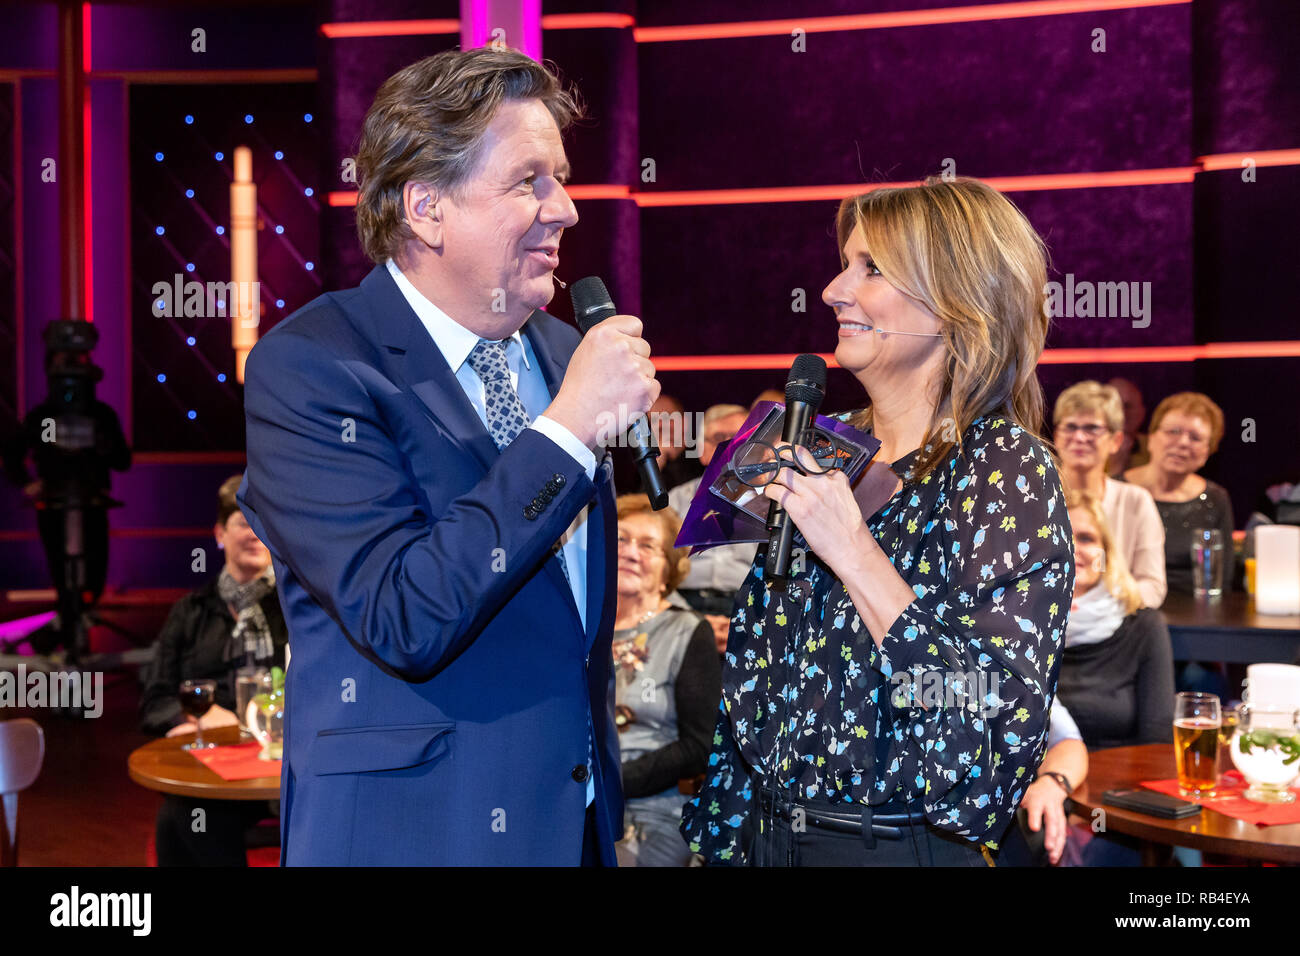 Leipzig, Germany. 14th Dec, 2018. The presenters of the MDR talk show 'Riverboat' Kim Fisher and Jörg Kachelmann, recorded on the side of the recording of the show on 17.12.2018 in Leipzig. The show will be broadcast on 04.01.2019 at 22.00 on MDR television and is the TV comeback of Kachelmann, who already hosted the talk show with Kim Fisher until 2010. Credit: Thomas Schulze/dpa-Zentralbild/ZB/dpa/Alamy Live News - Stock Image